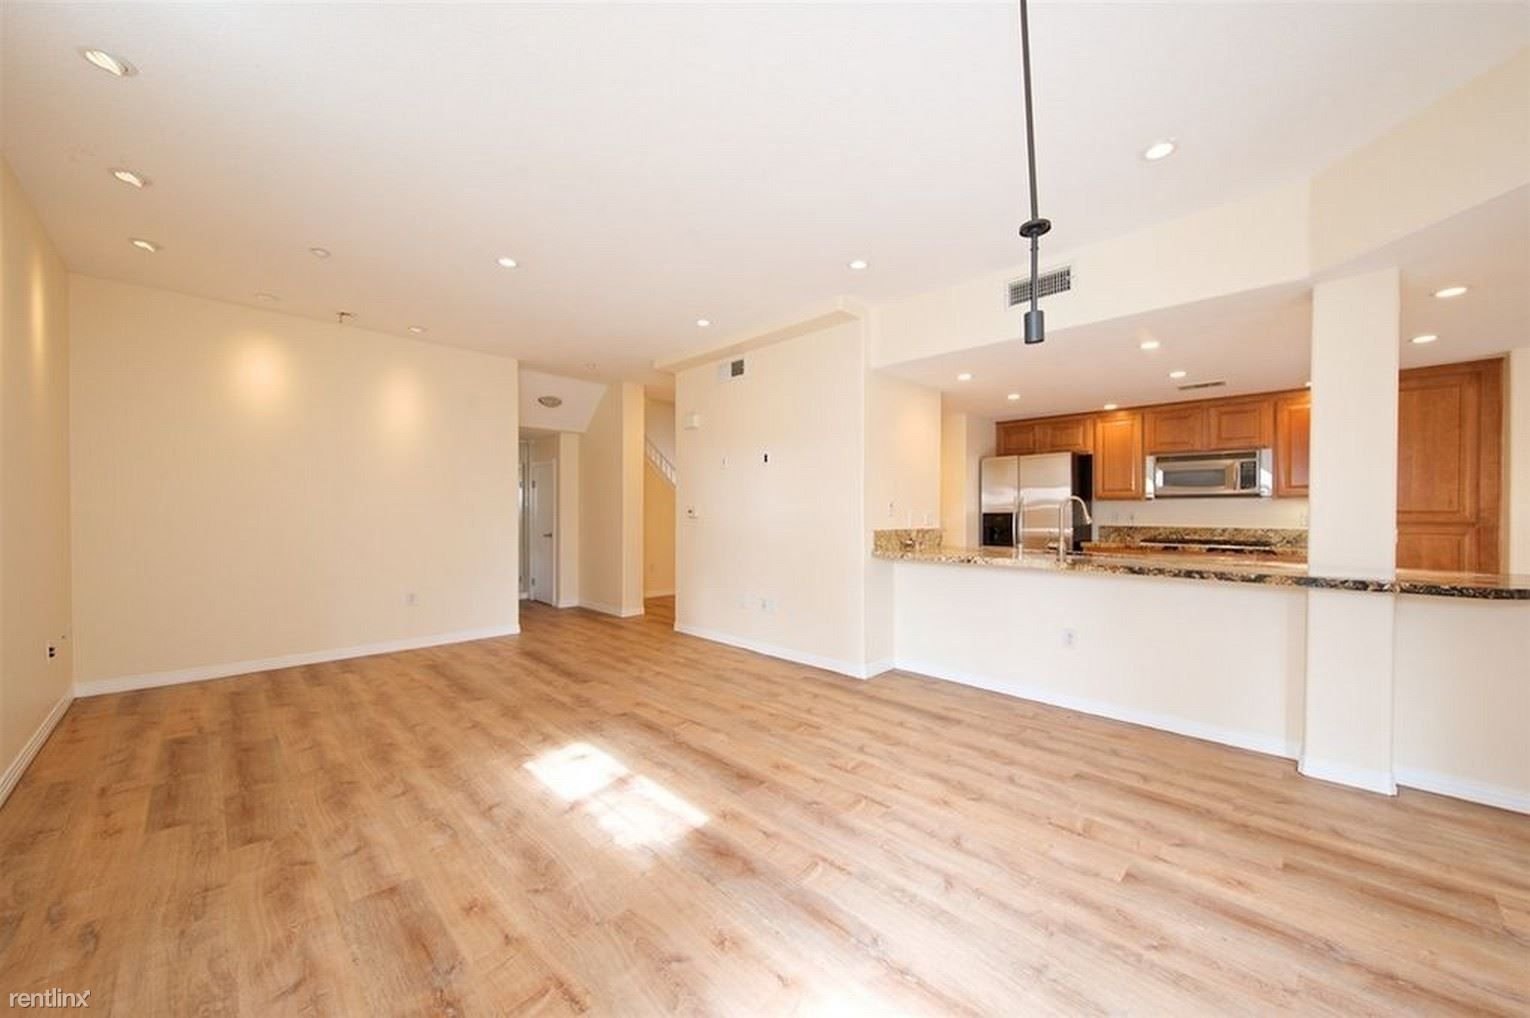 301 W G St for rent